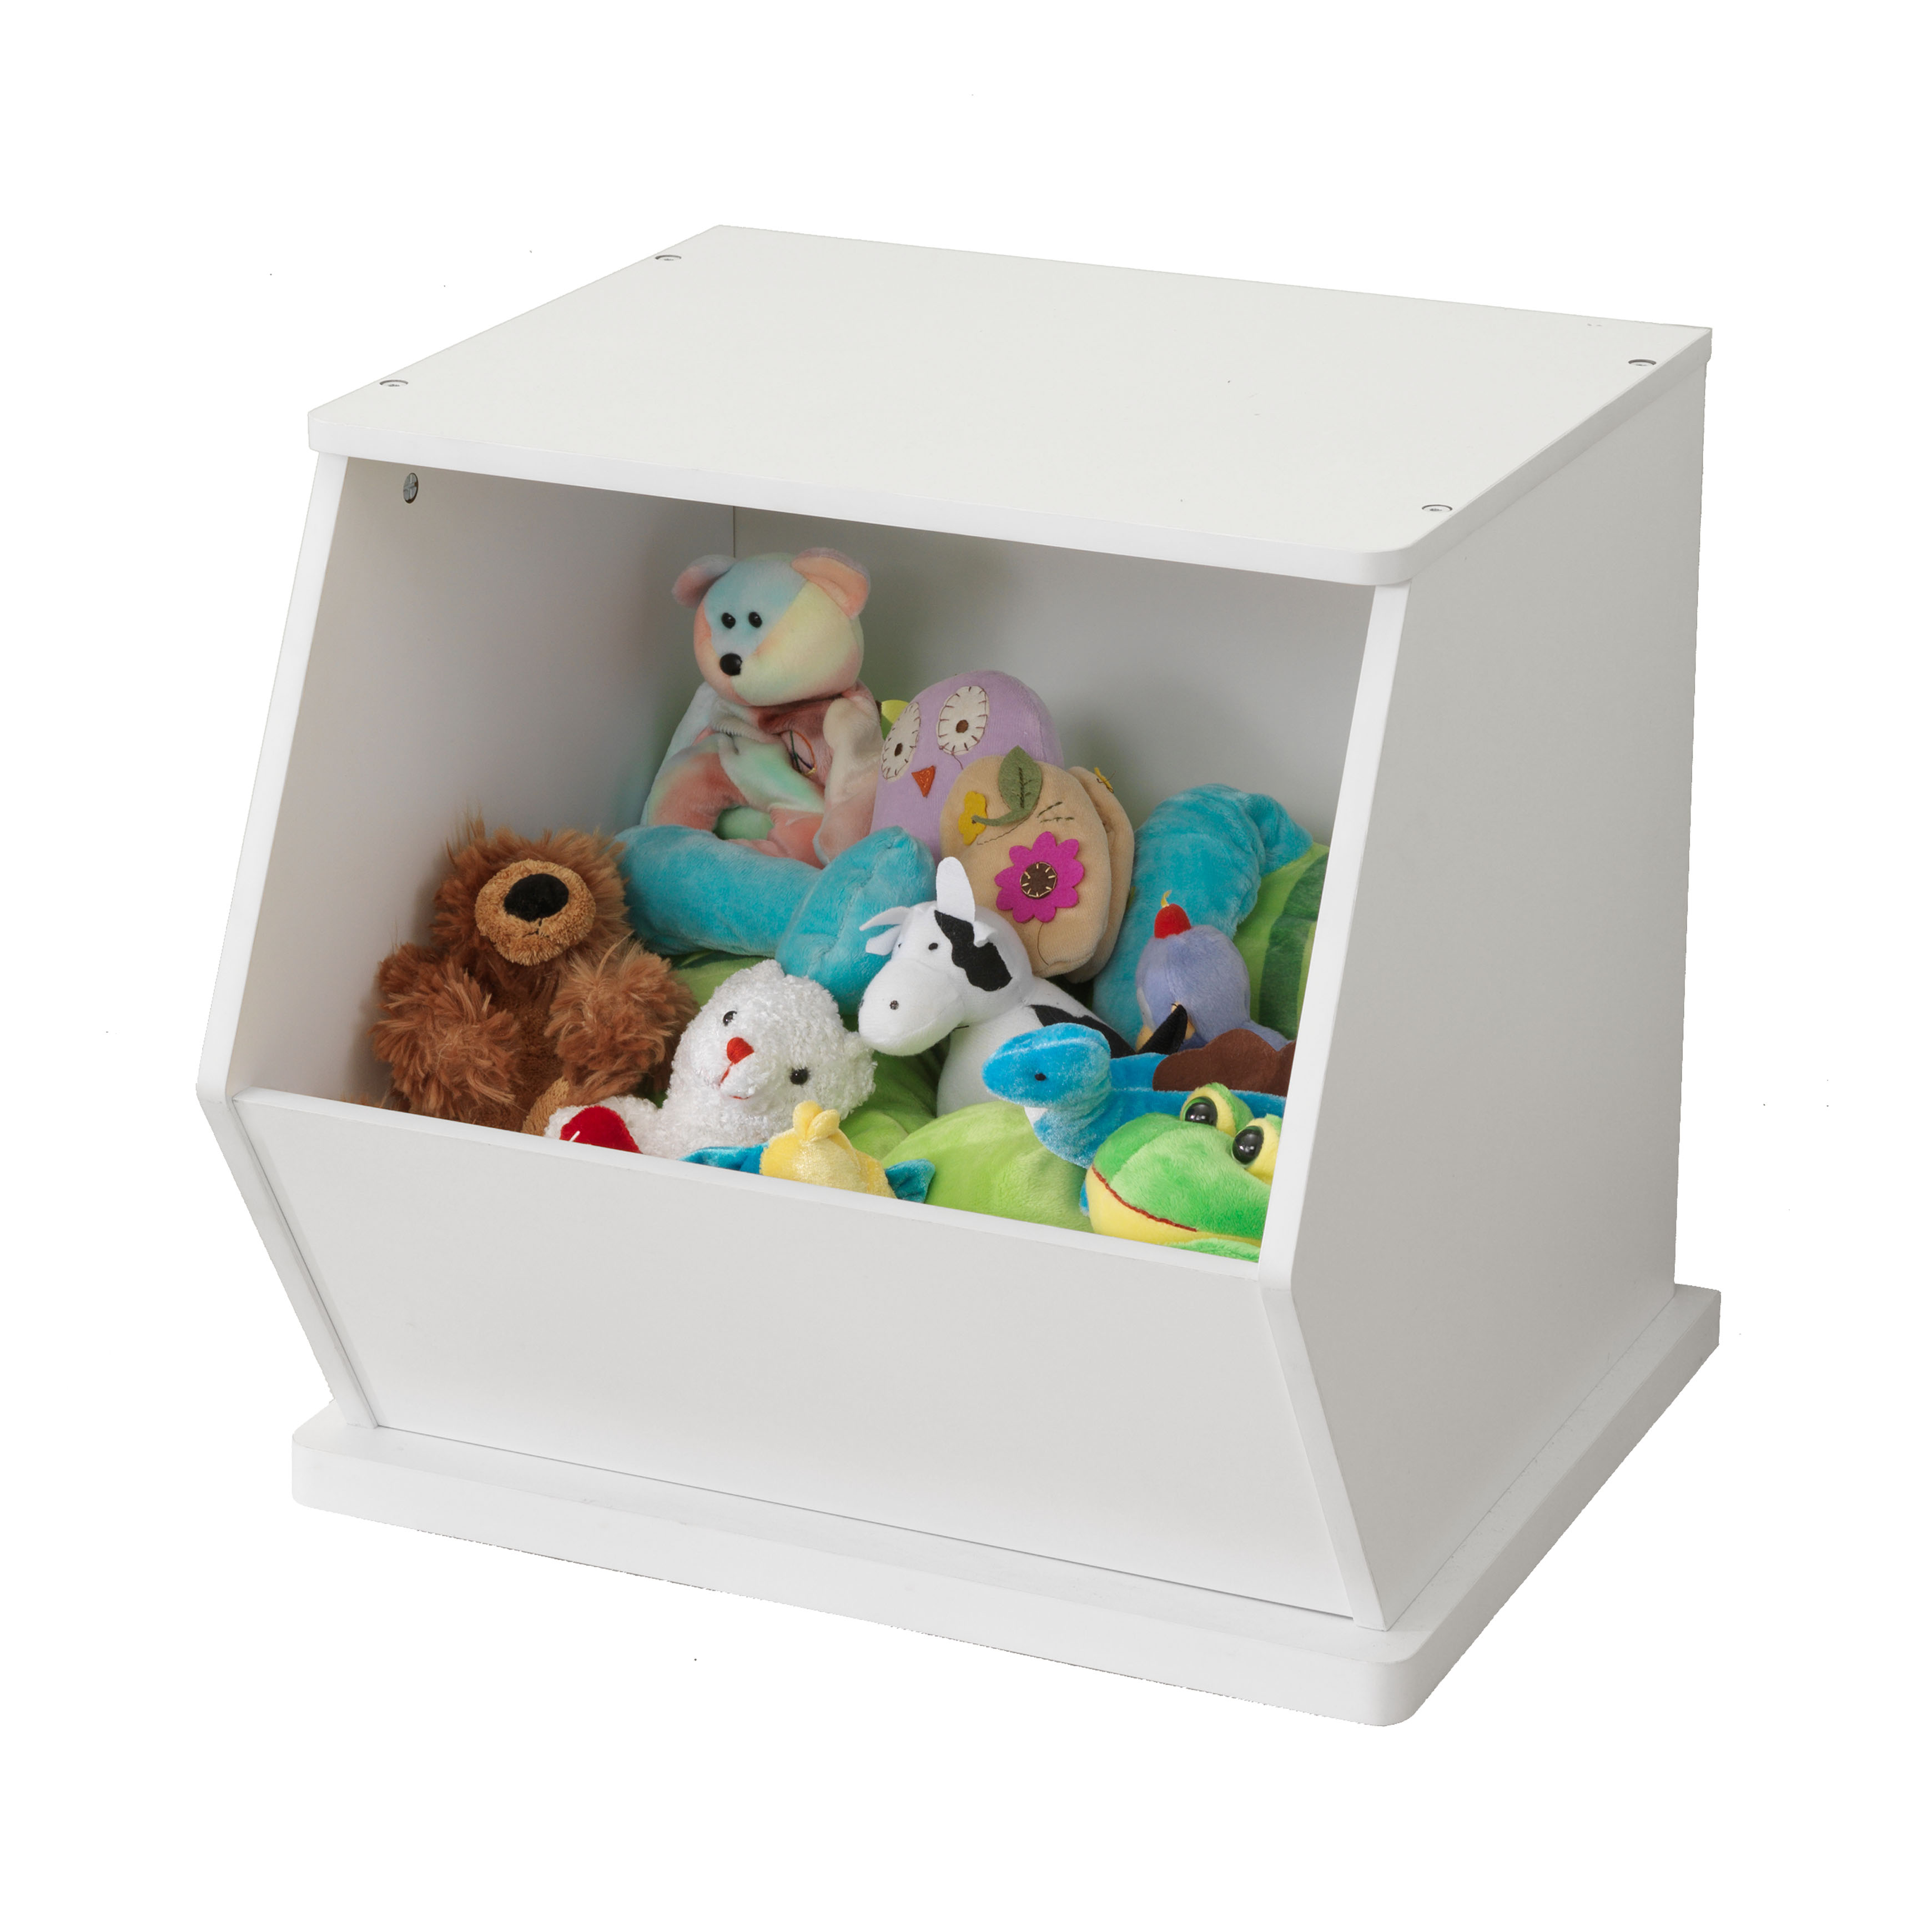 KidKraft Single Storage Unit   White